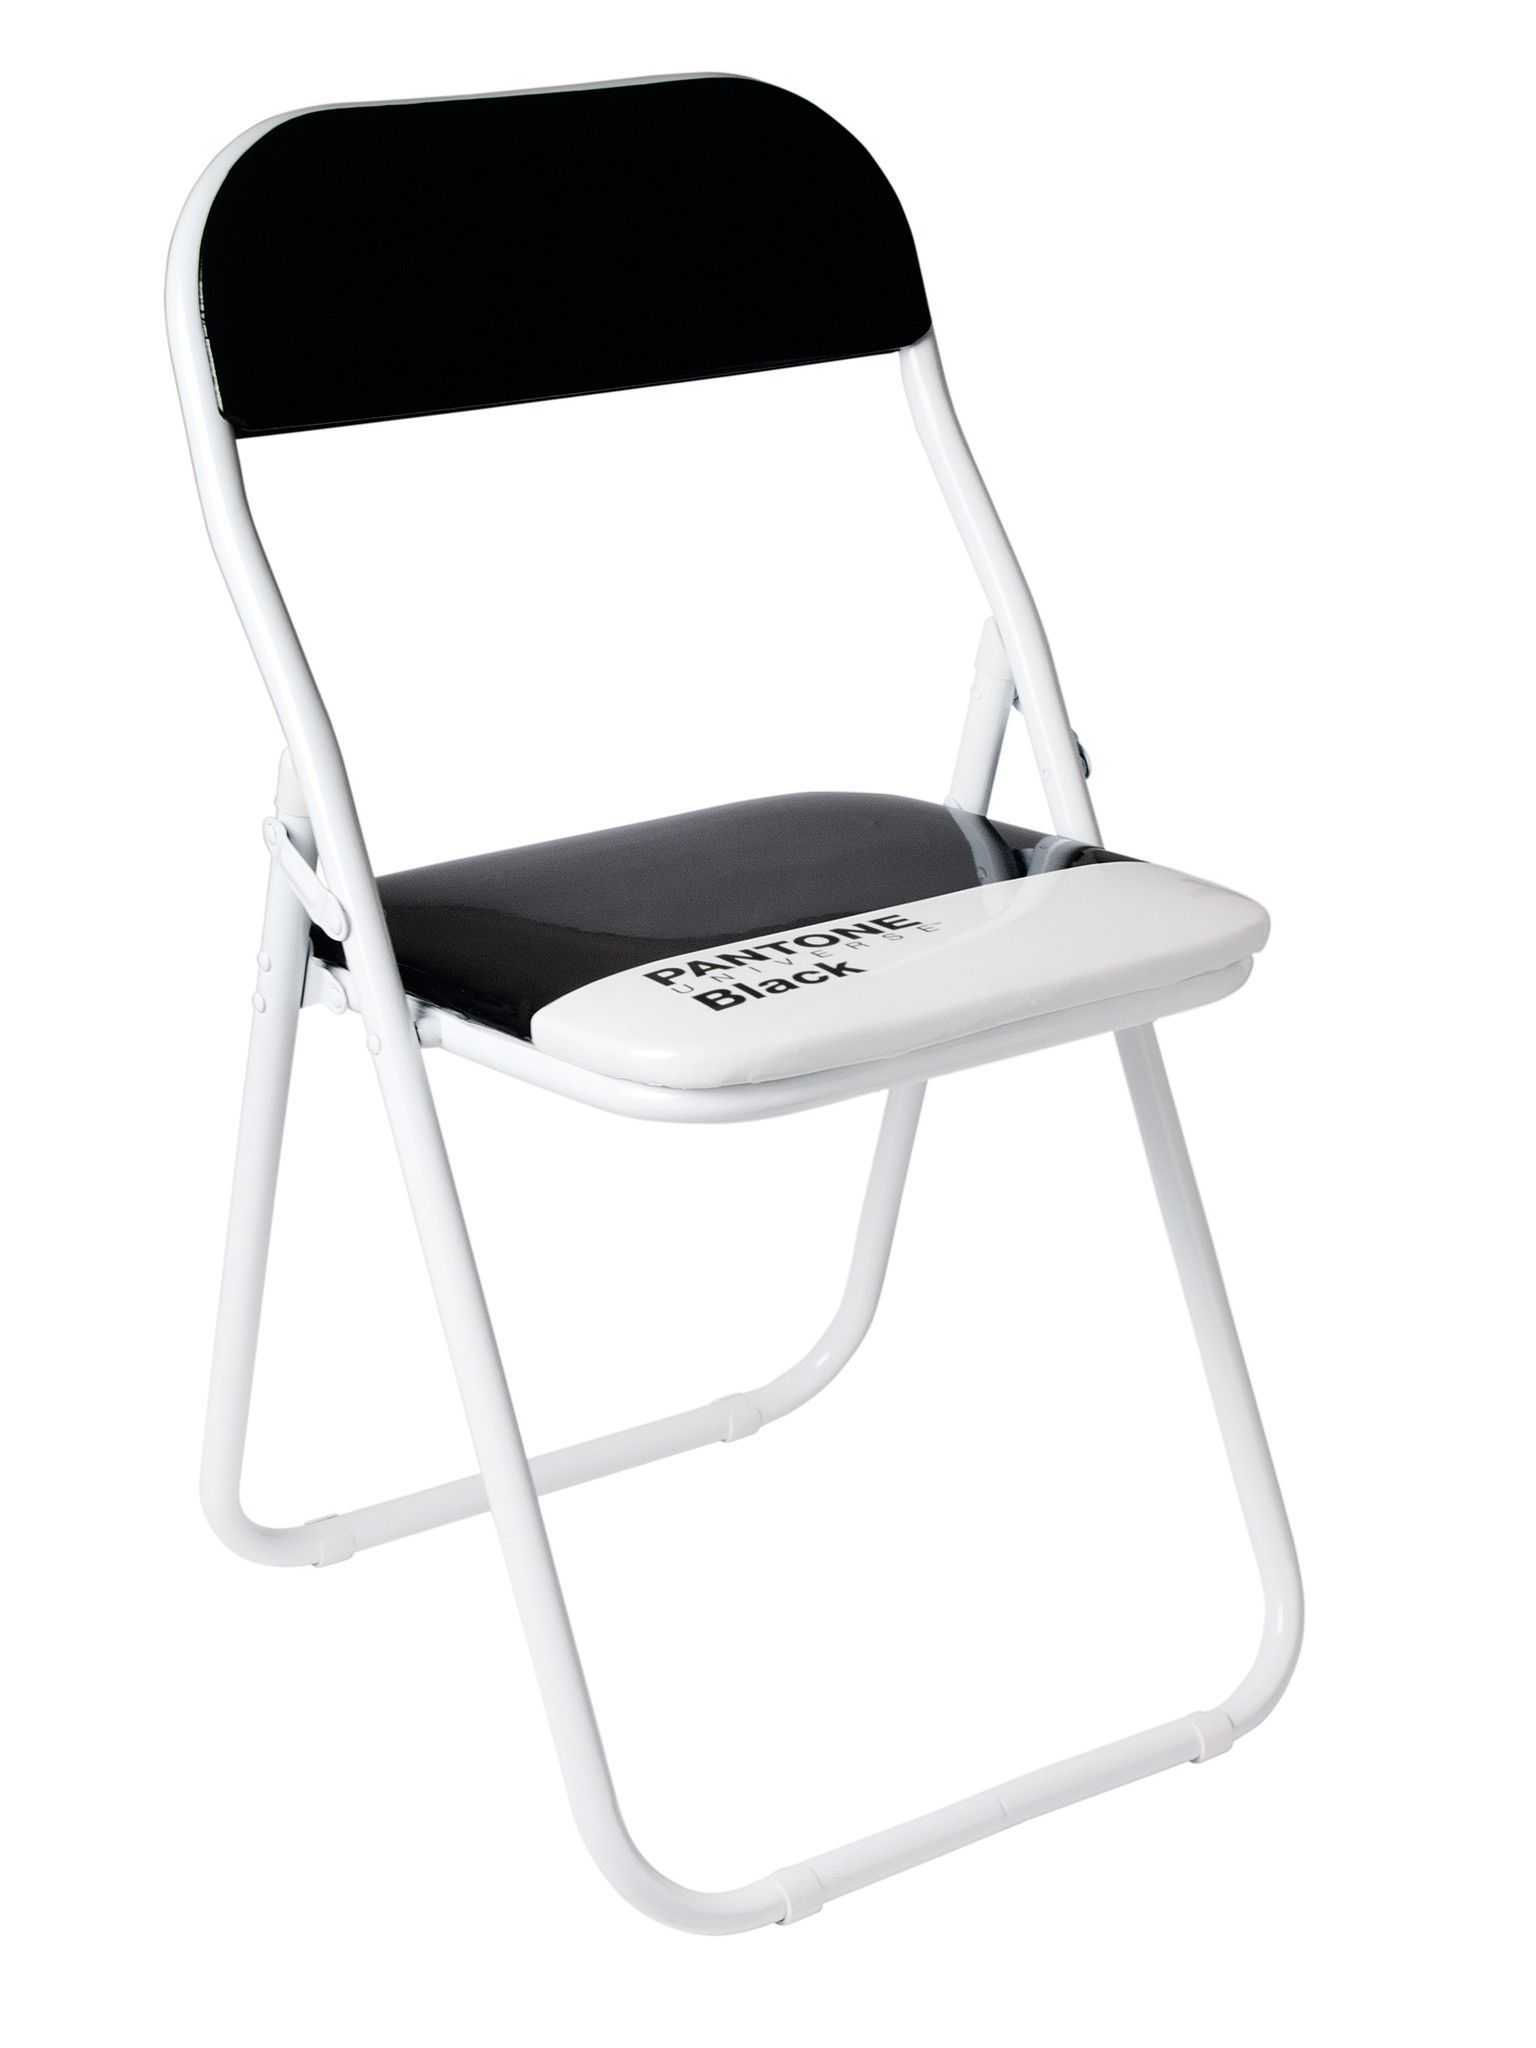 Black Metal Folding Chairs pantone black metal folding chair (set of 4) | metals, products